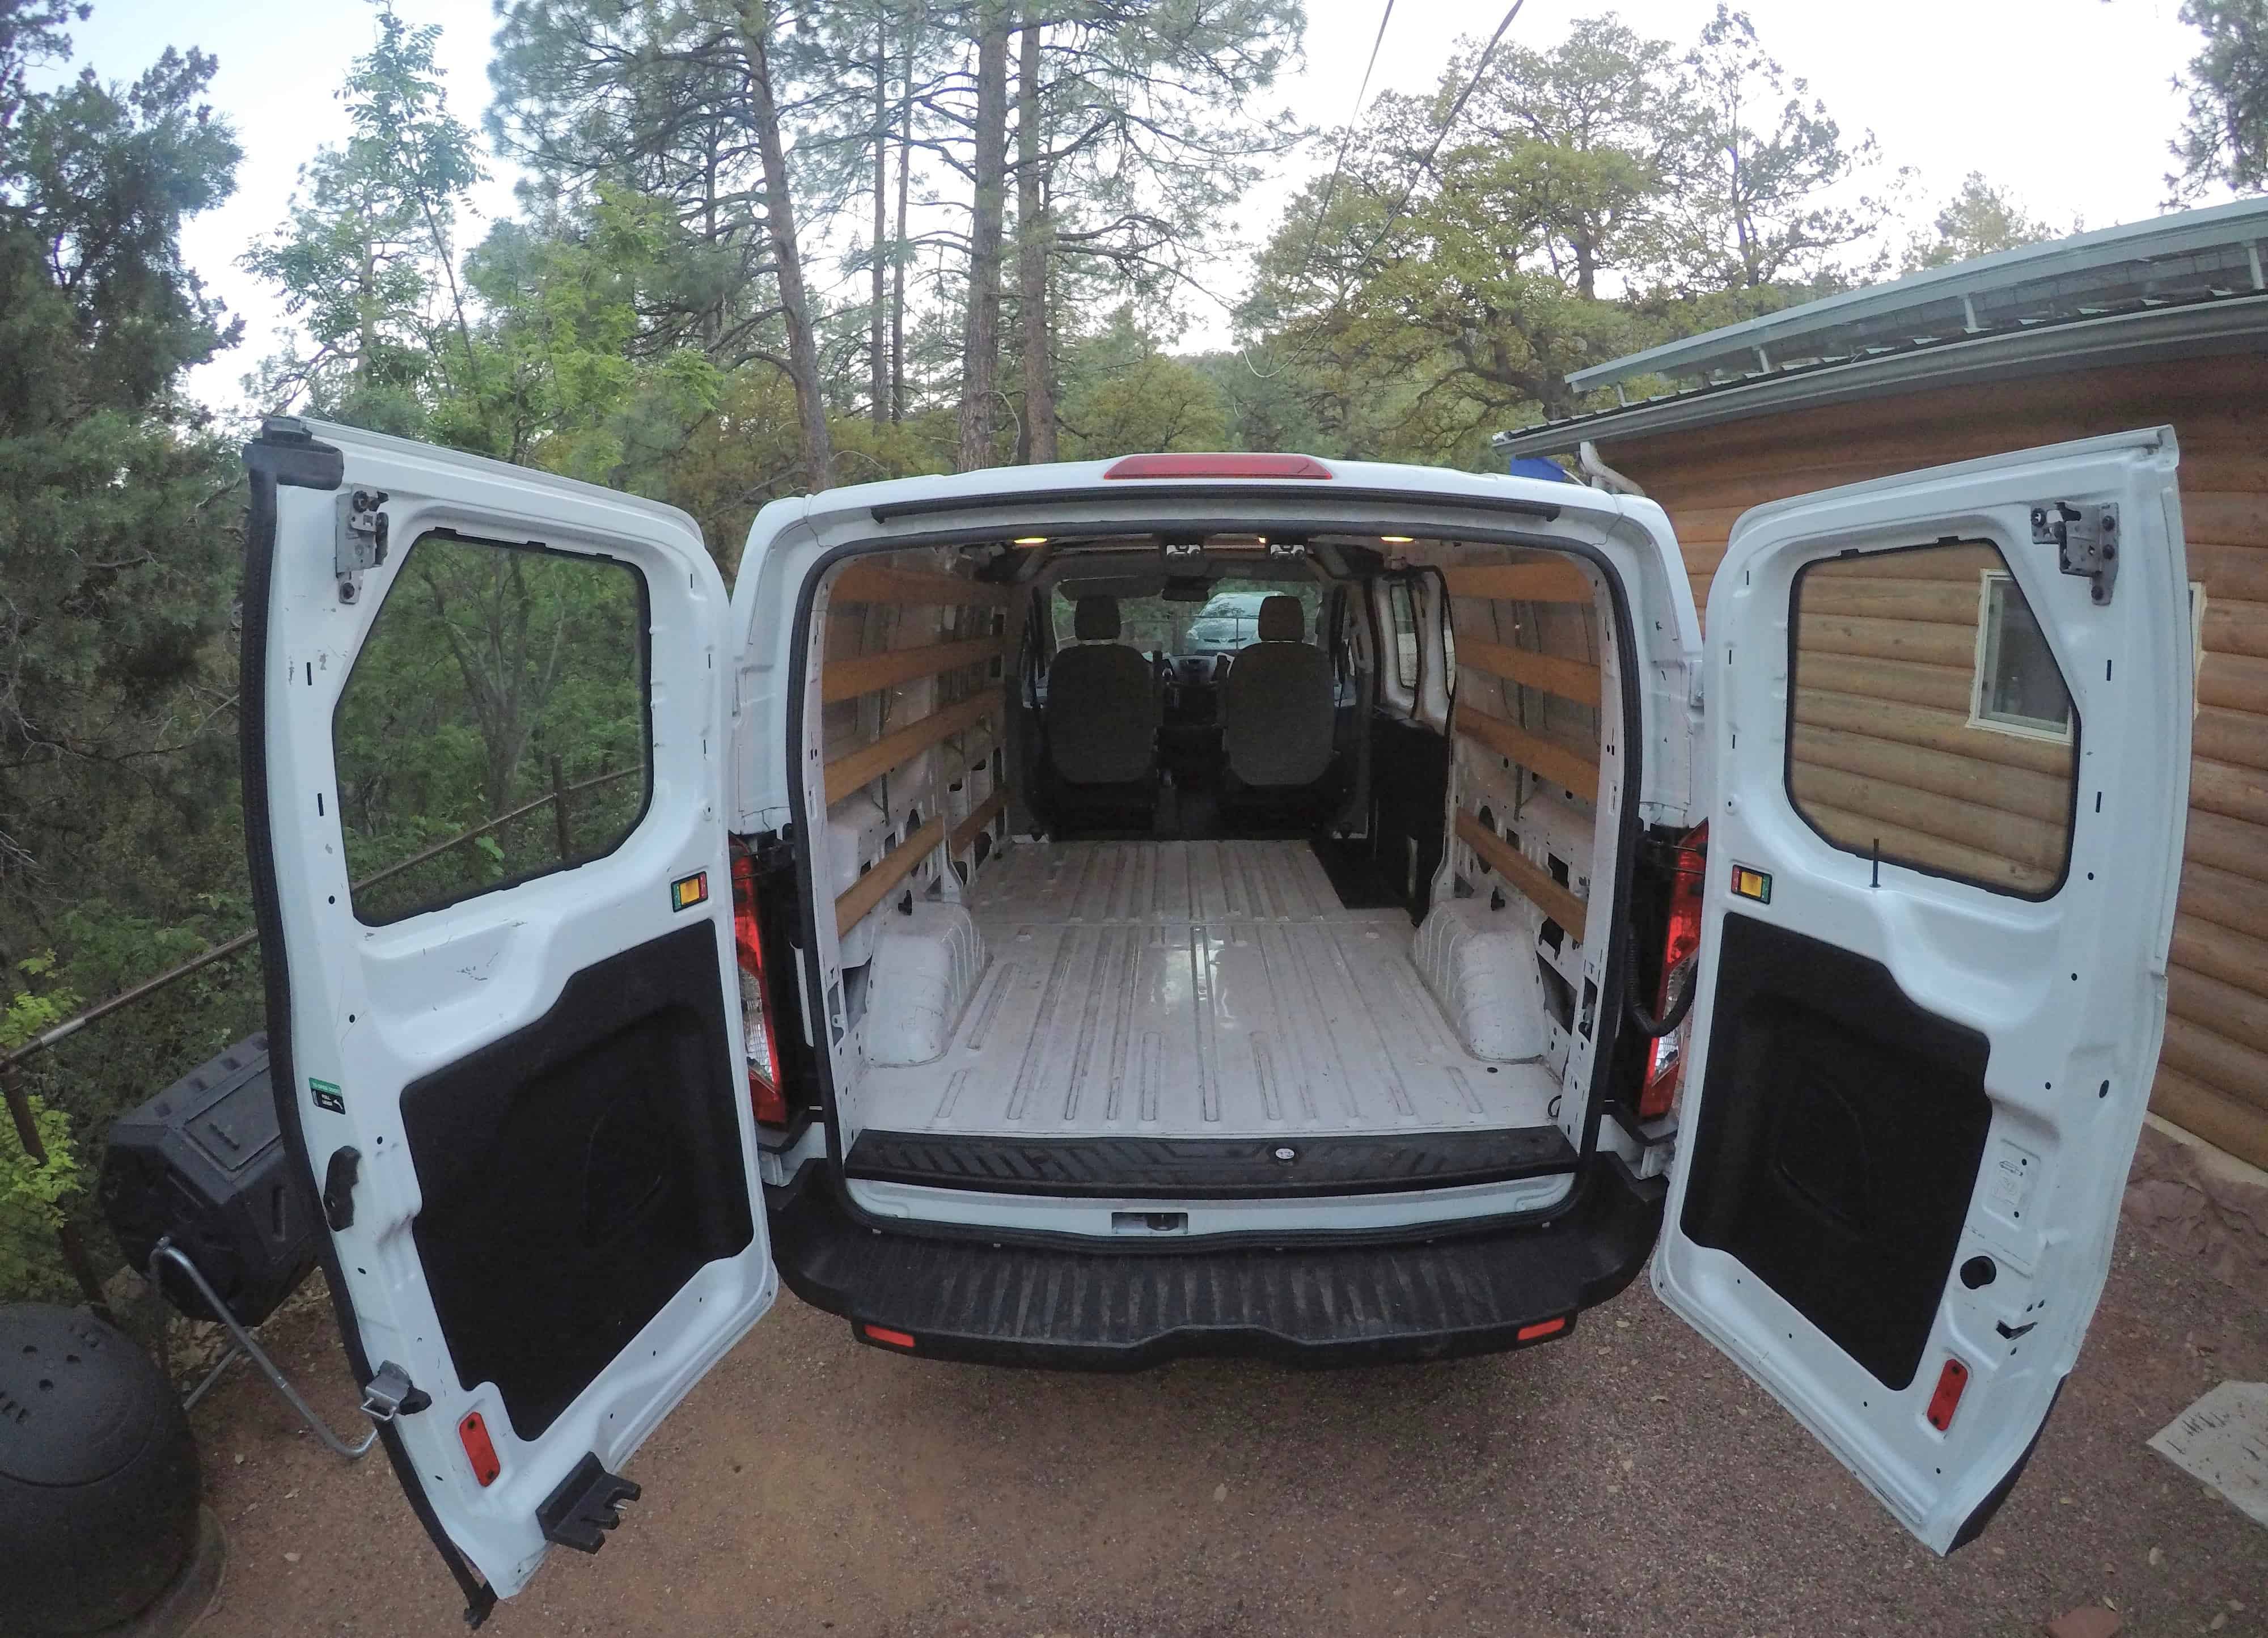 DIY Budget Van Build: How I Converted a Cargo Van Into a